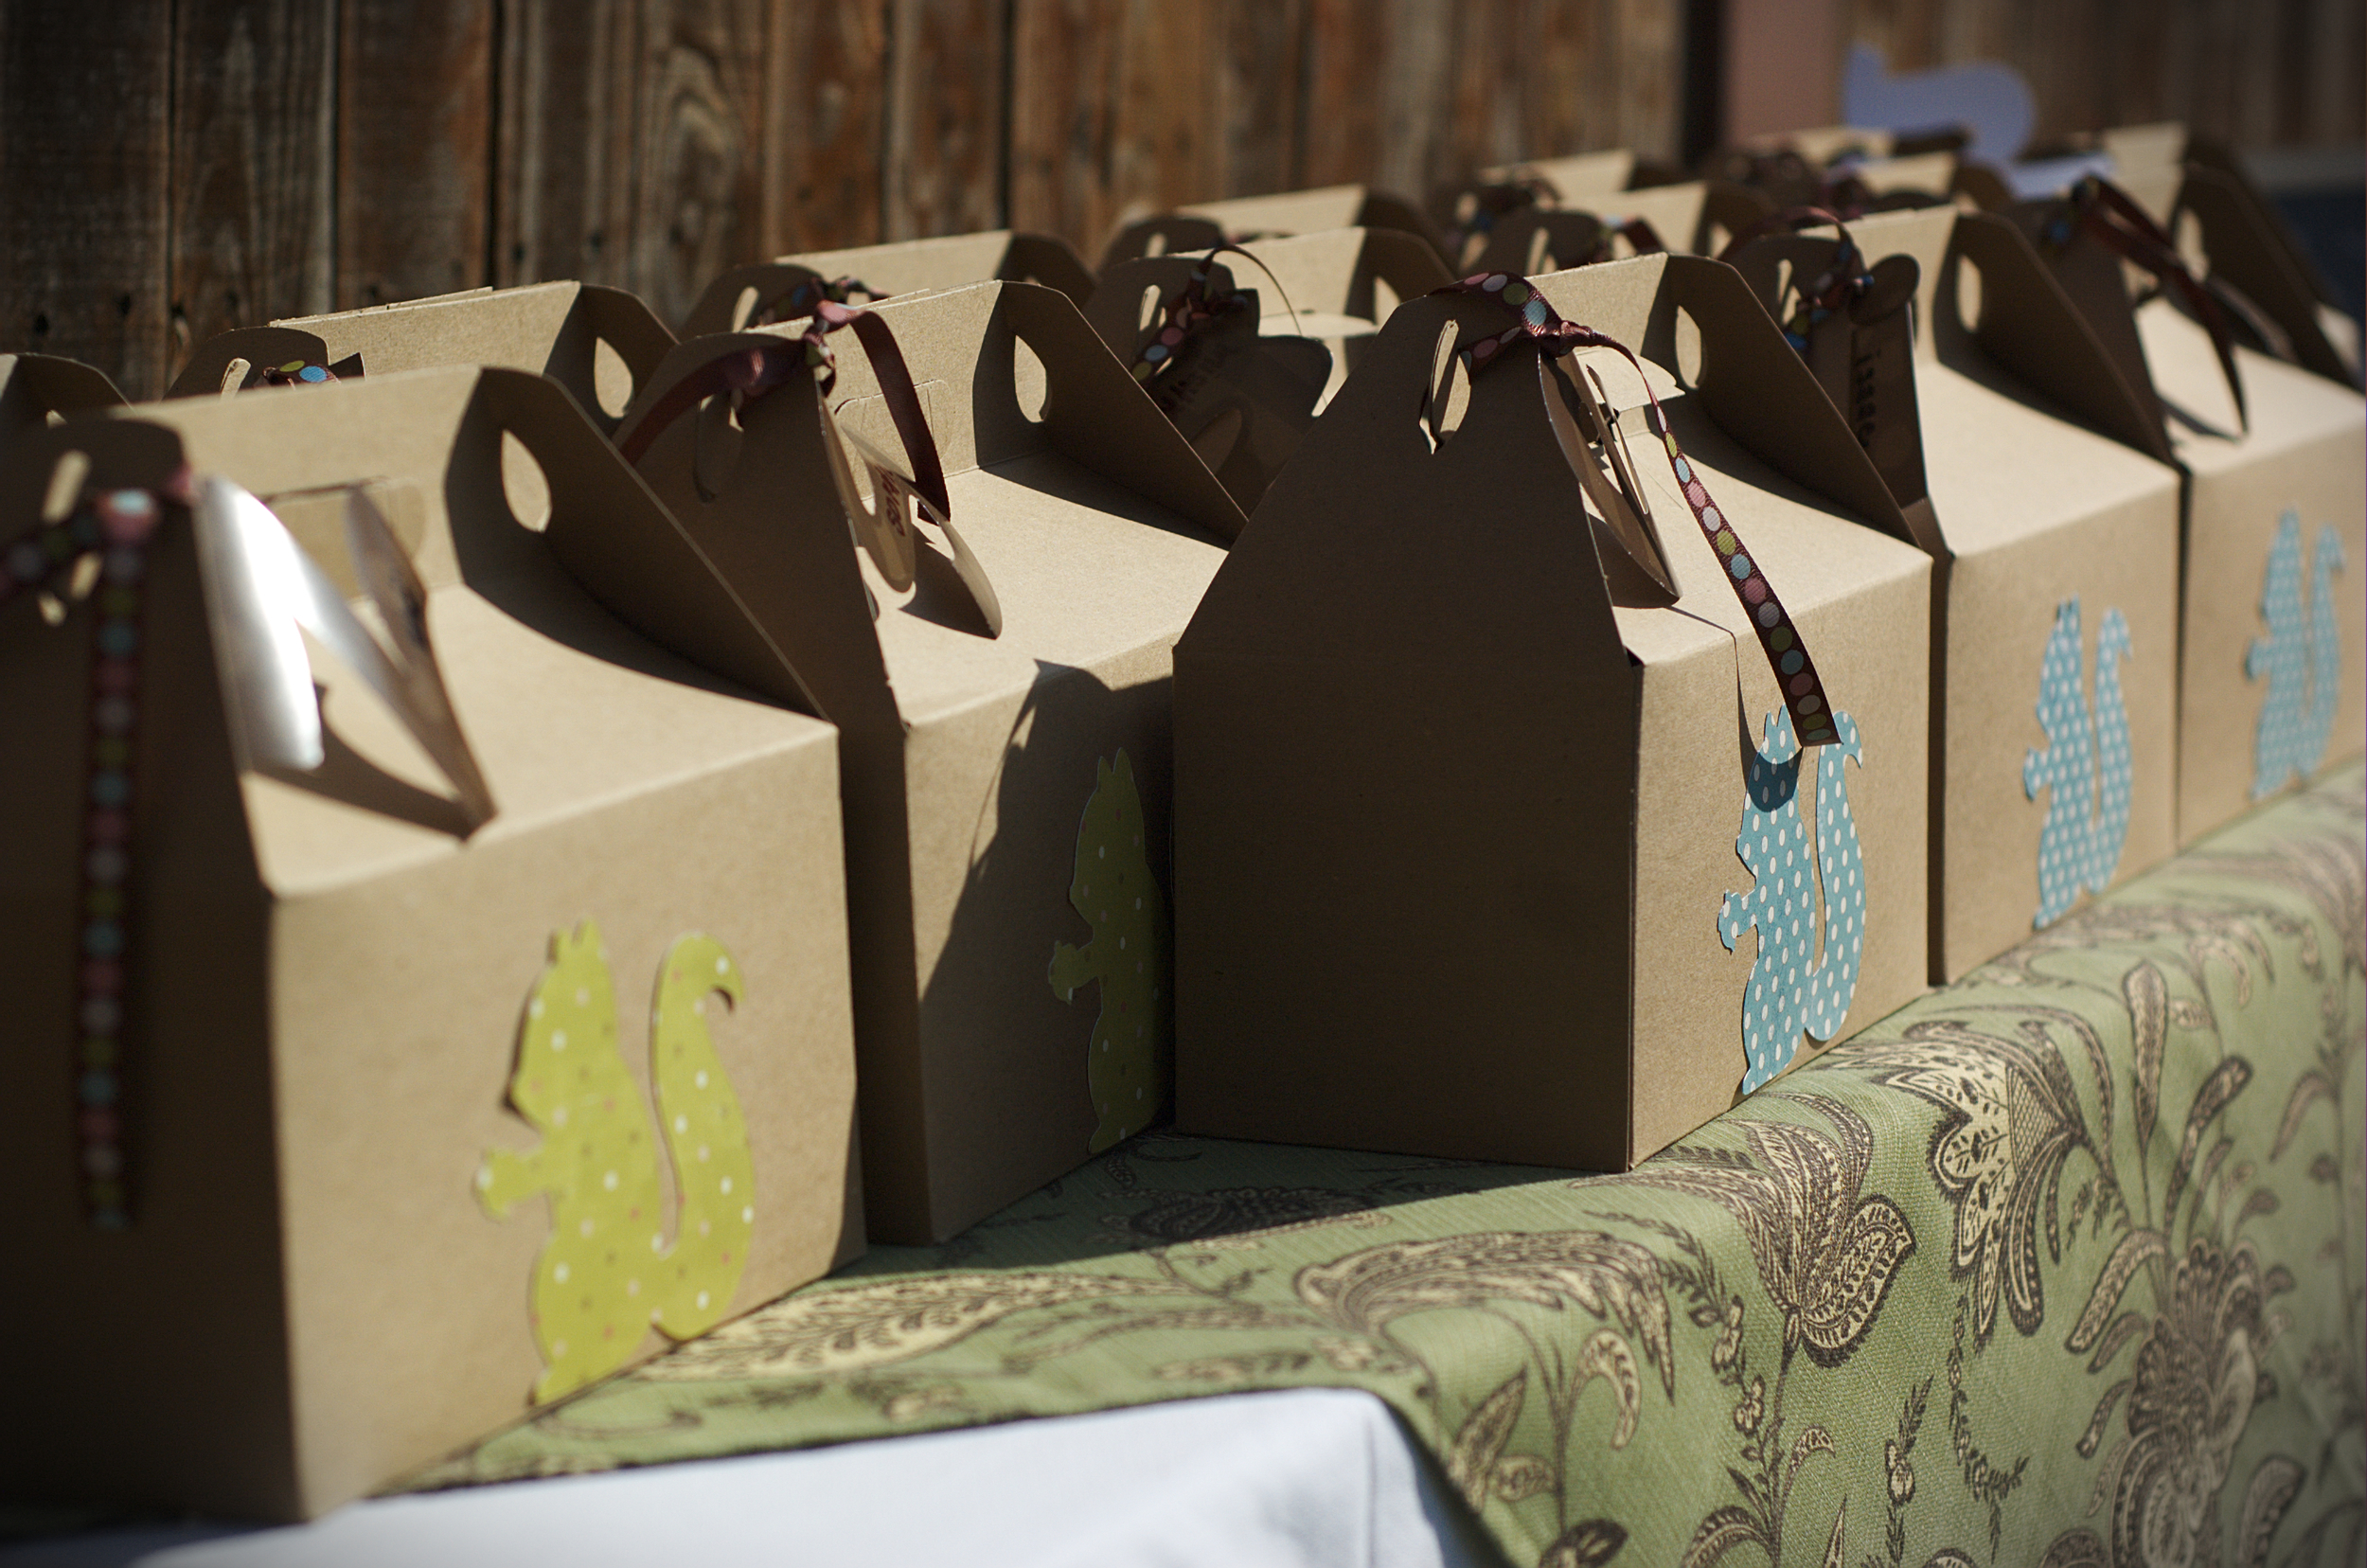 Squirrel silhouettes cut on on the Cricut adorn these cute favor boxes!